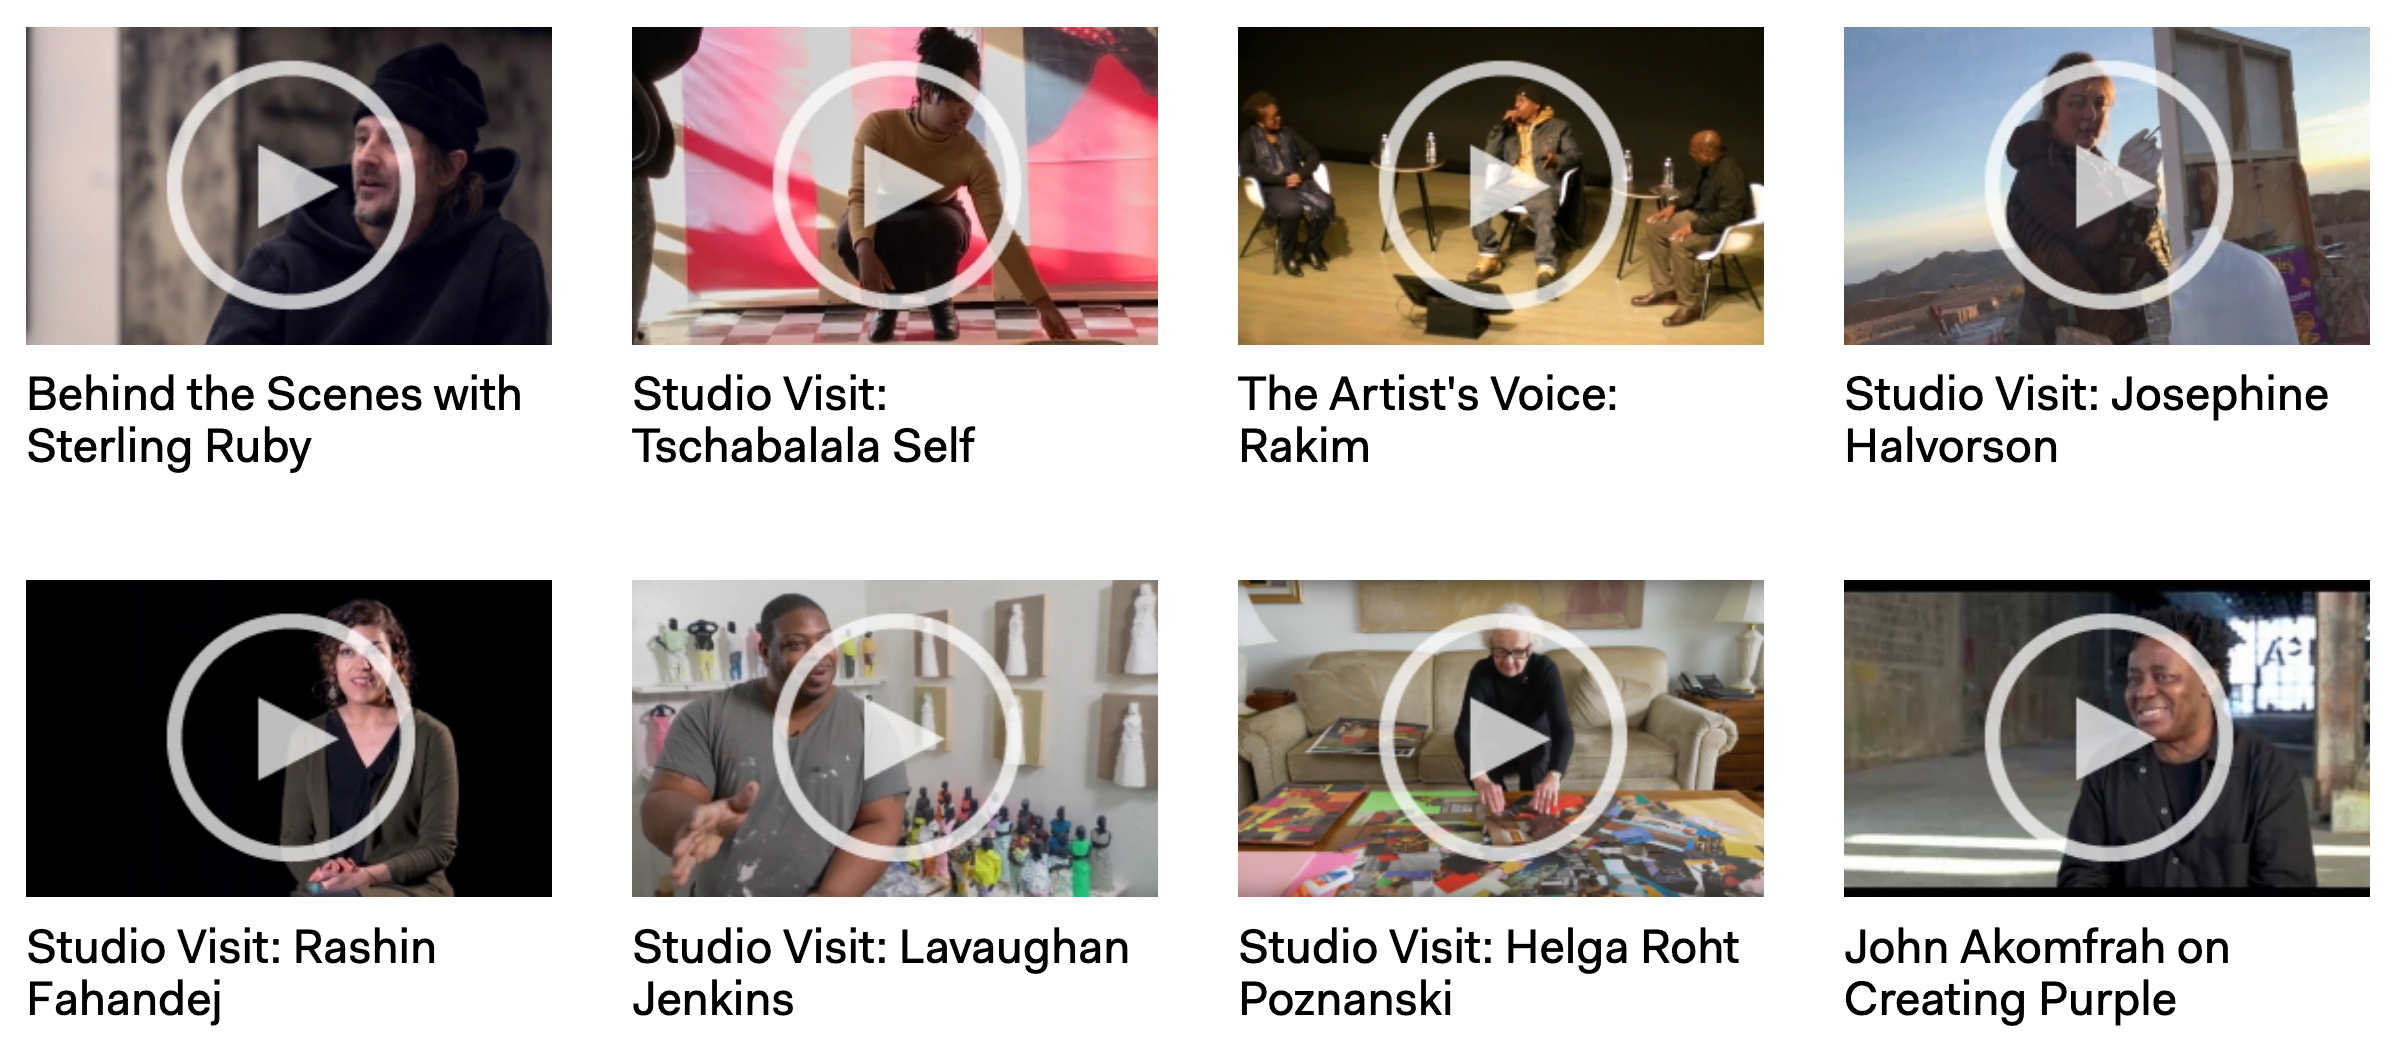 Two rows of screenshots showing stills of artist interview videos that are available to watch on ICA Boston's website.